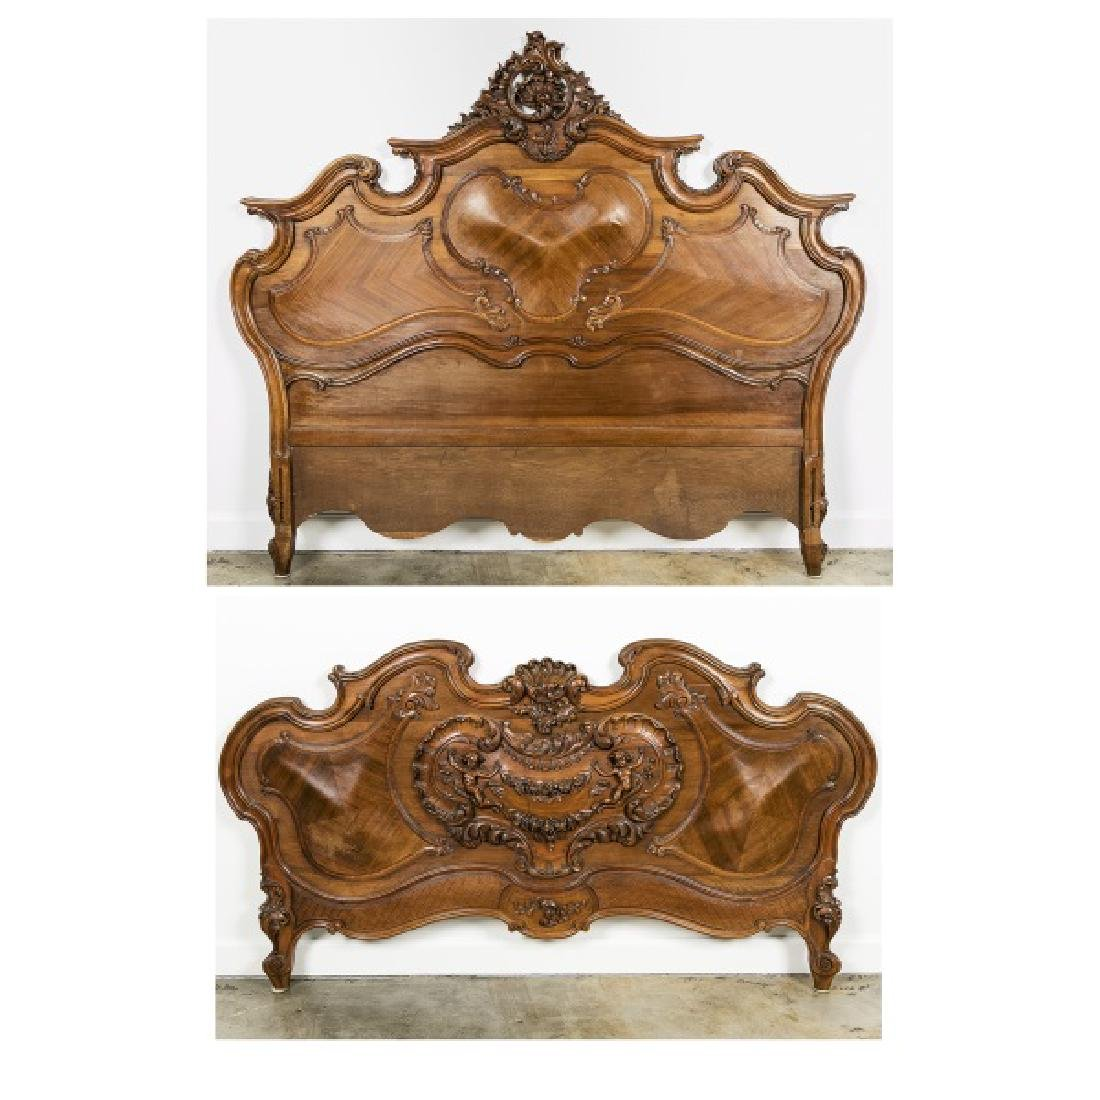 19th Century Rococo Ornately Carved Bed Frame